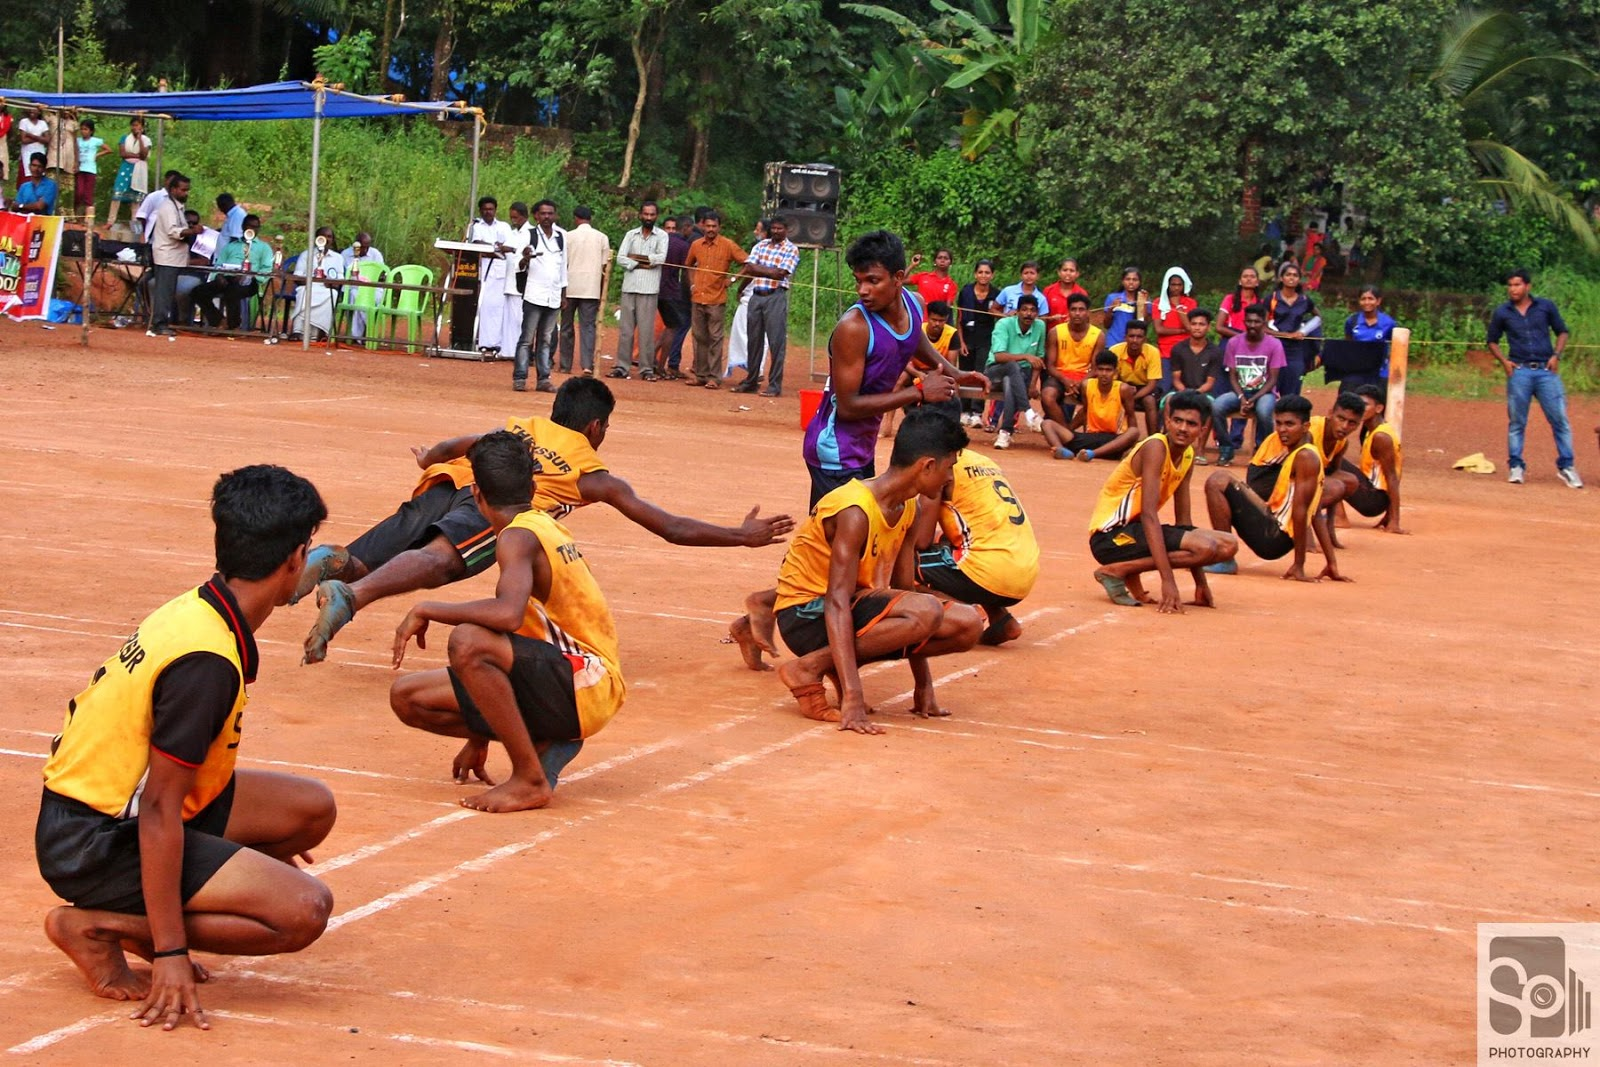 kho kho game Kho kho (punjabi: ਖੋ-ਖੋ) is a tag sport from the indian subcontinent it is played by teams of twelve players, of which nine enter the field, who try to avoid being touched by members of the opposing team[1] it is one of the two most popular traditional tag games of the south asia, the.